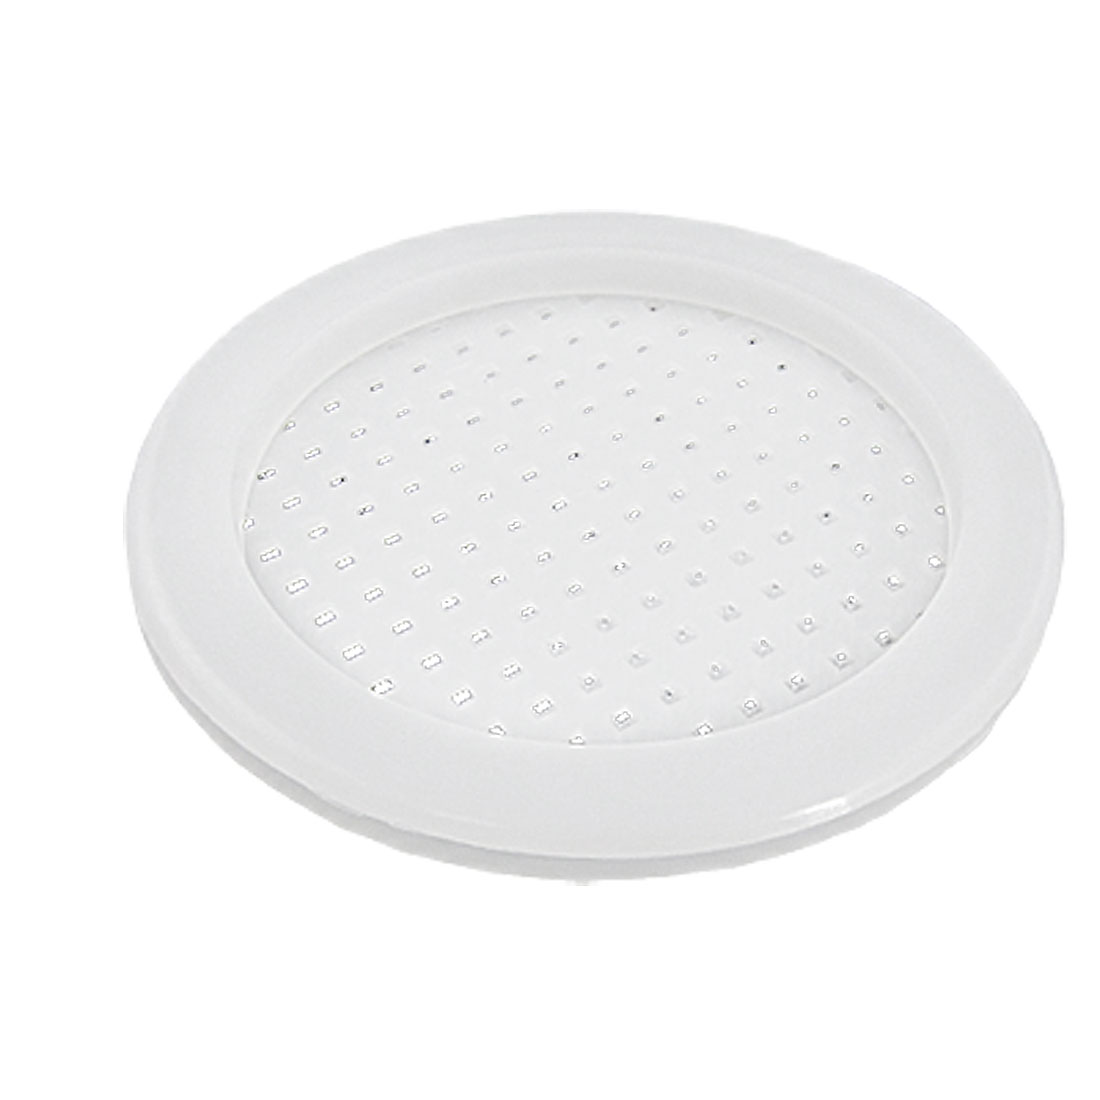 "2 Pcs White Plastic Round Holes Design 2"" Outlet Sink Basin Strainer"